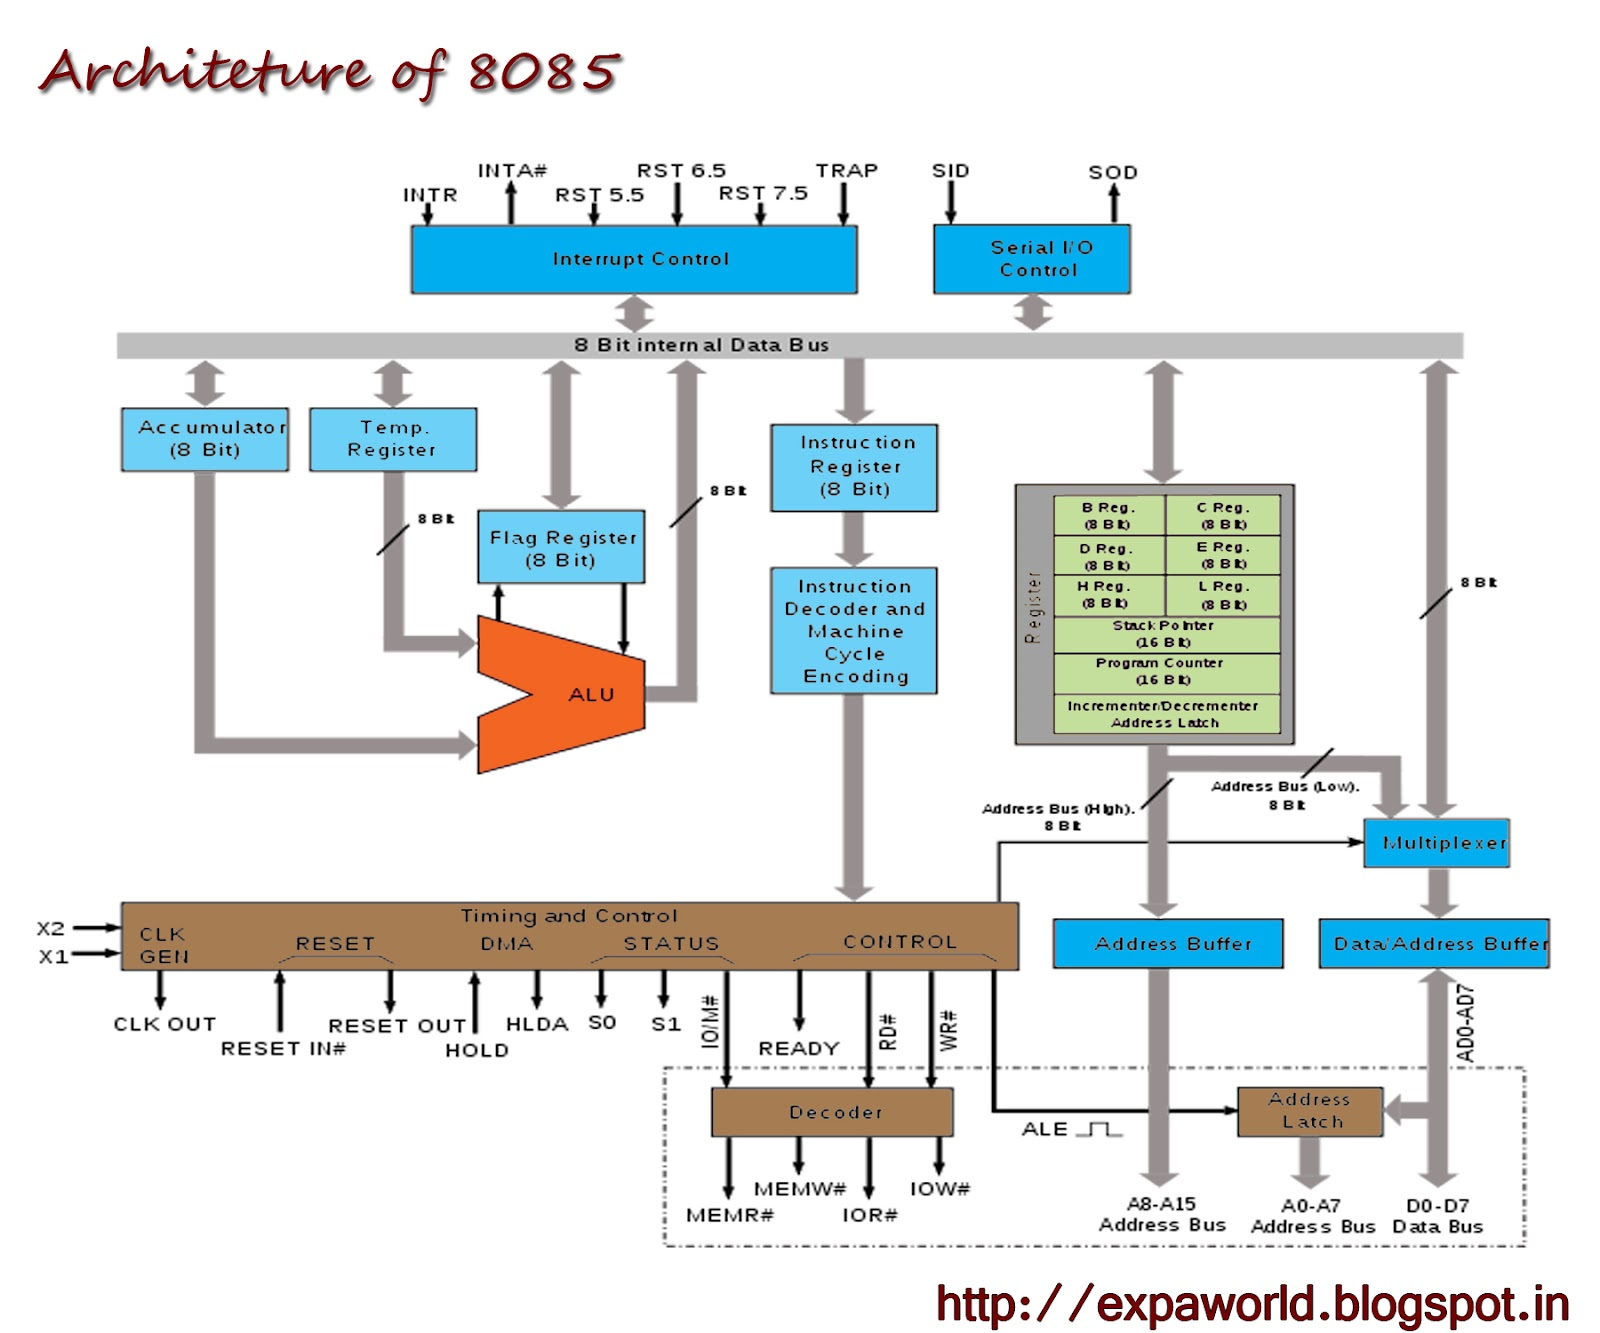 world of embedded intel 8085 microprocessor architecture On architecture 8085 microprocessor